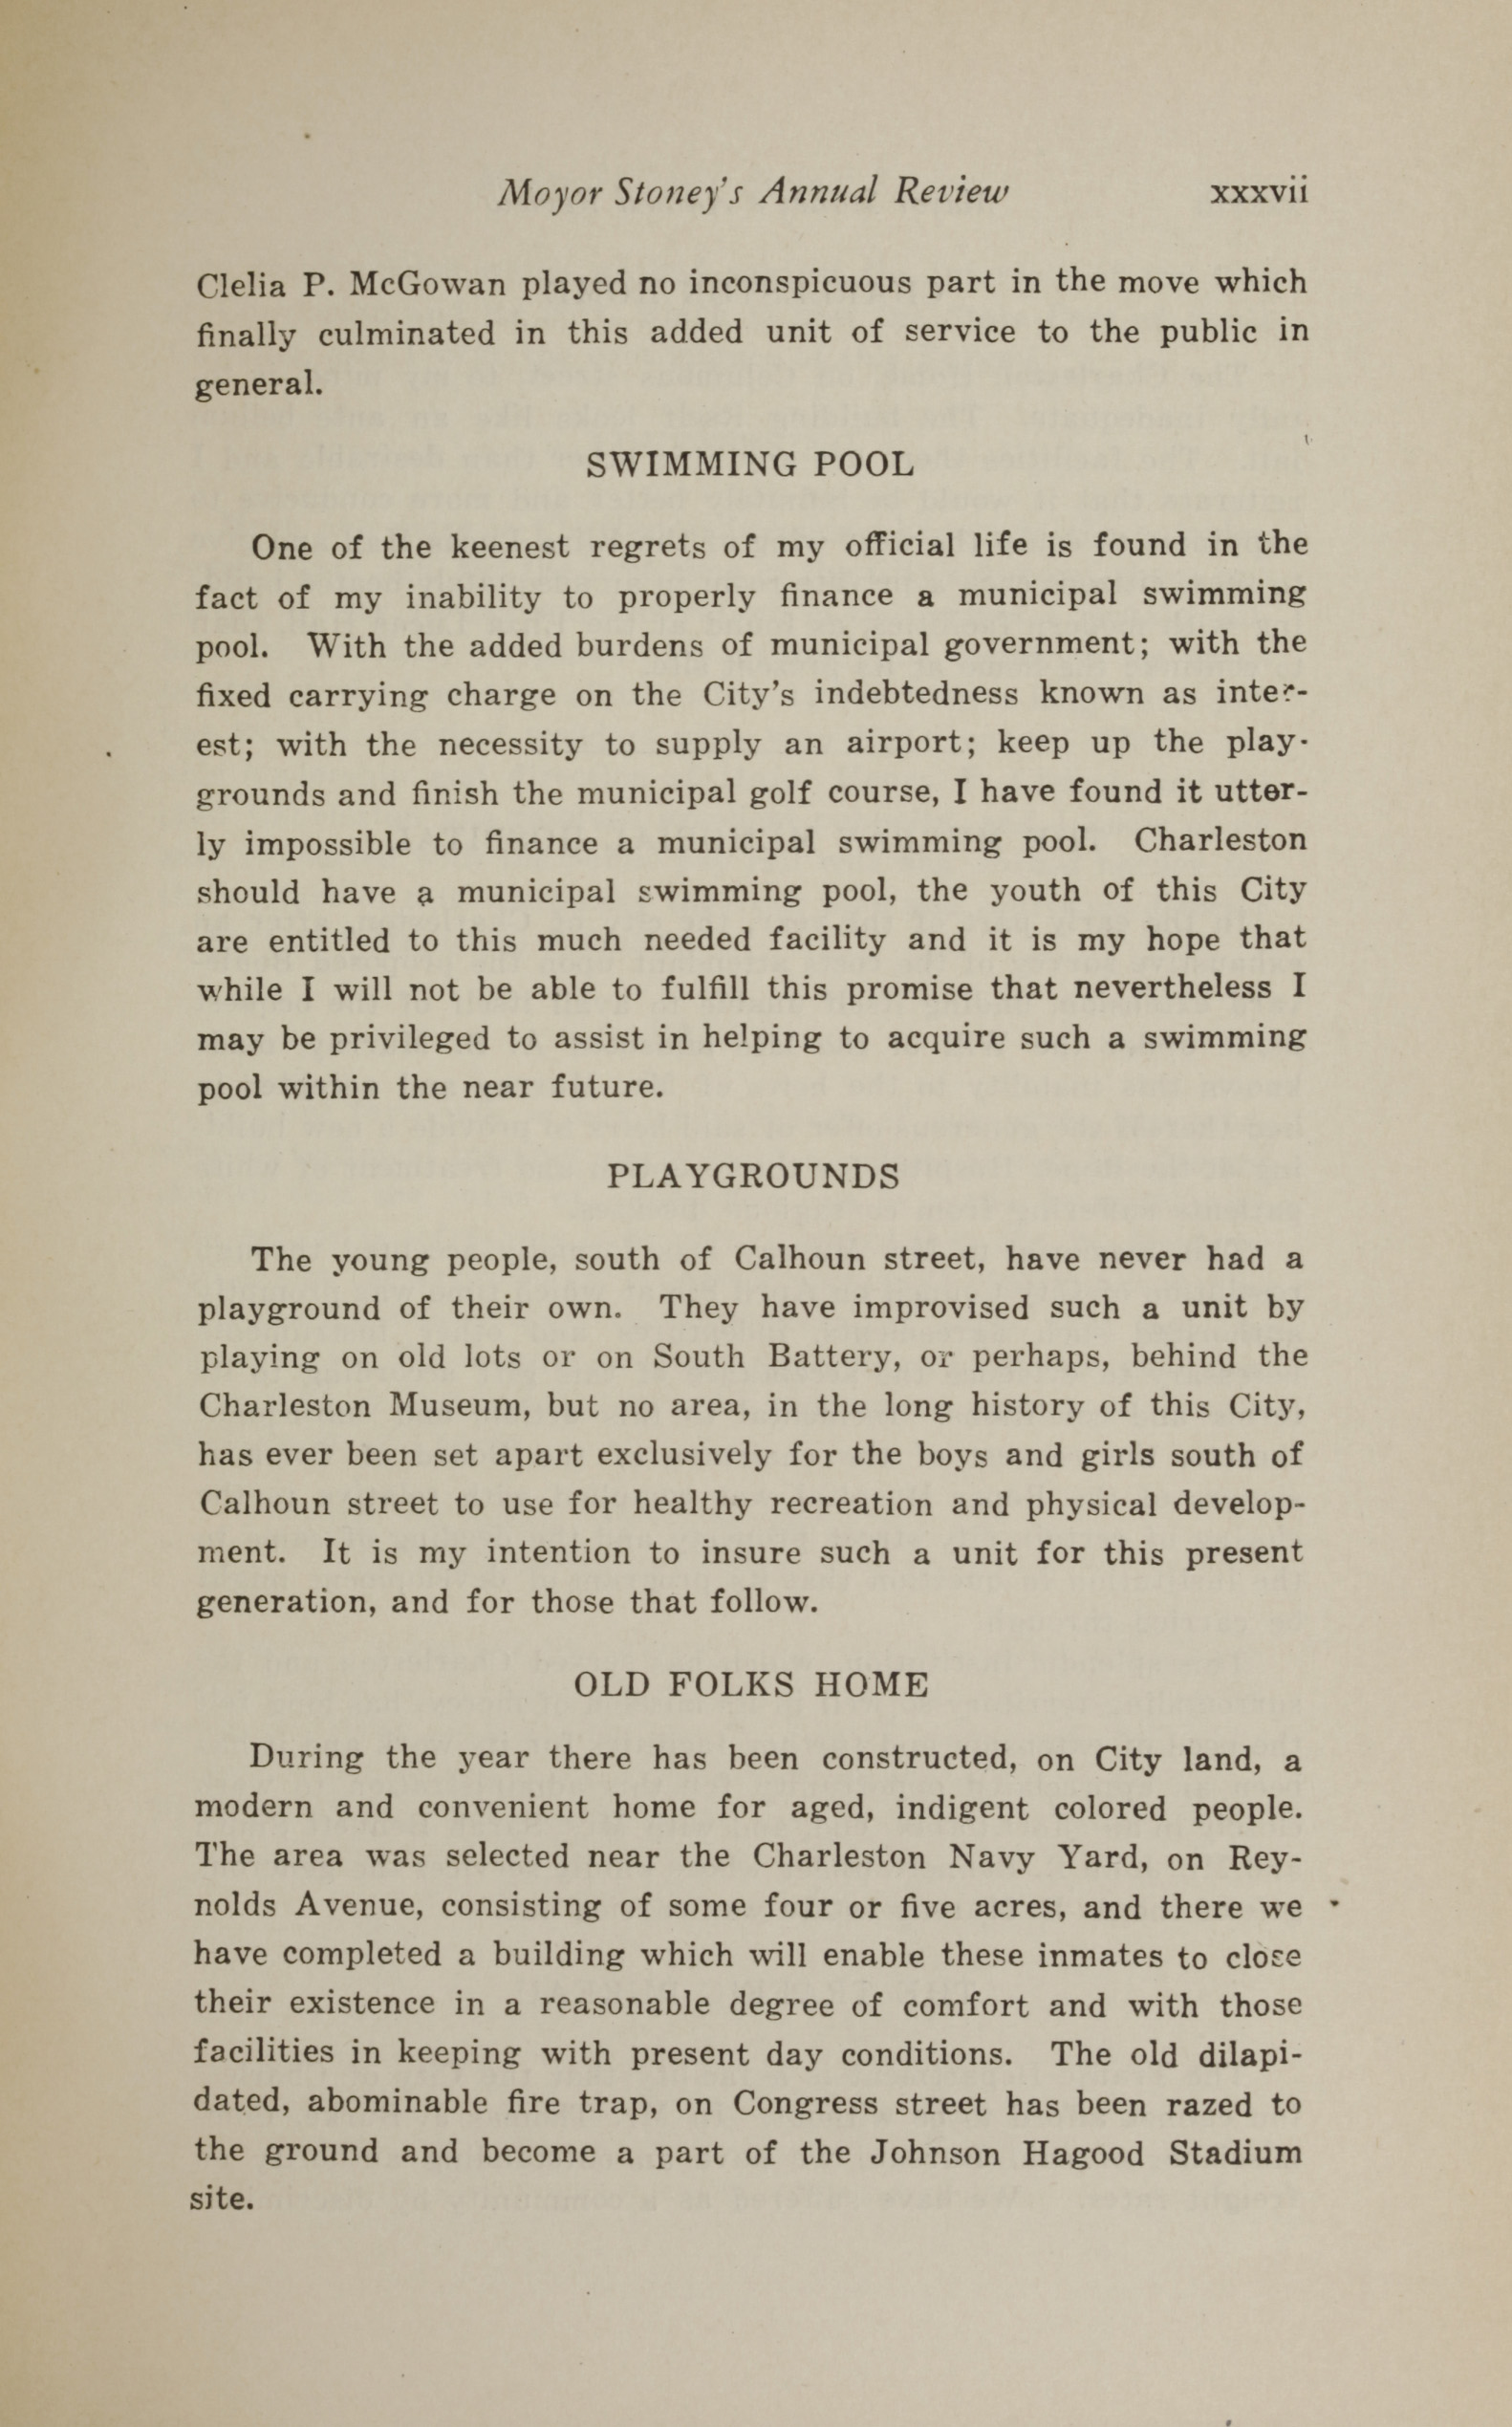 Charleston Yearbook, 1930, page xxxvii